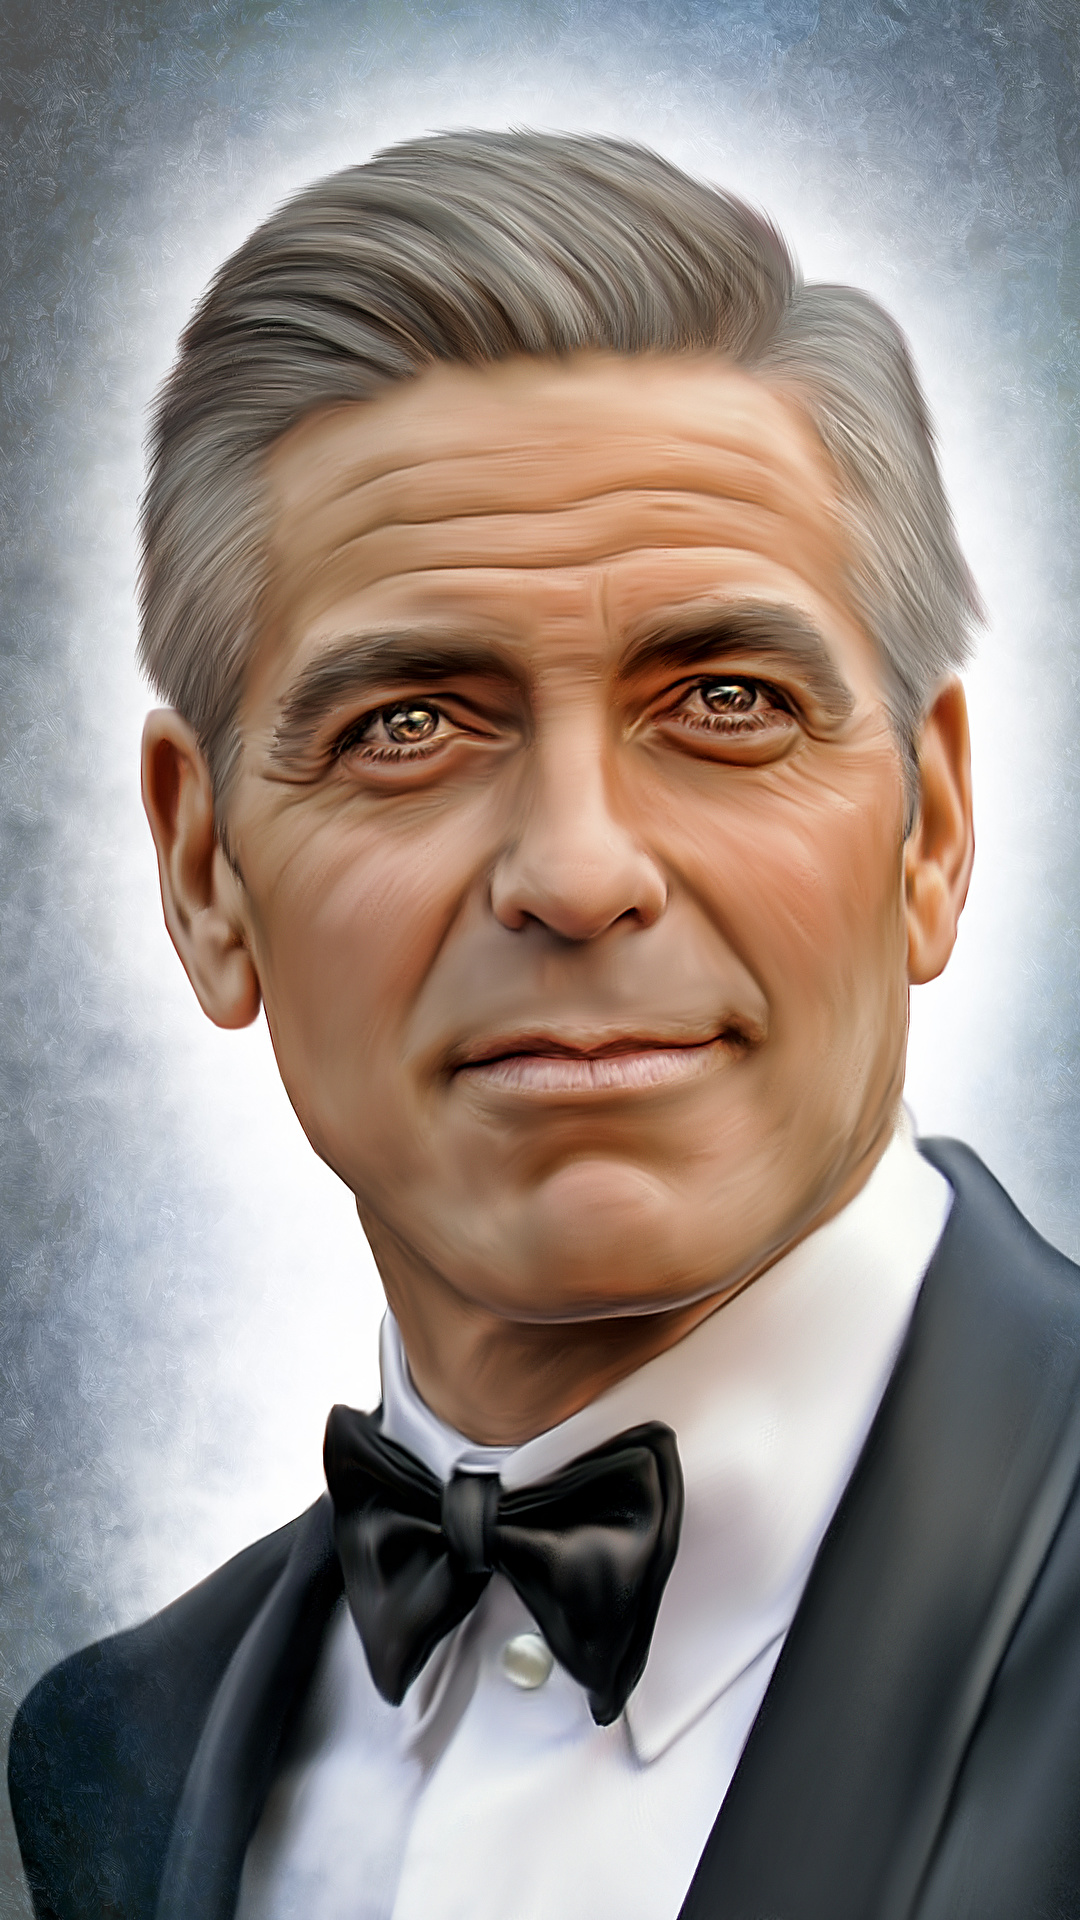 Image George Clooney Man Face Glance Celebrities Painting 1080x1920 1080x1920